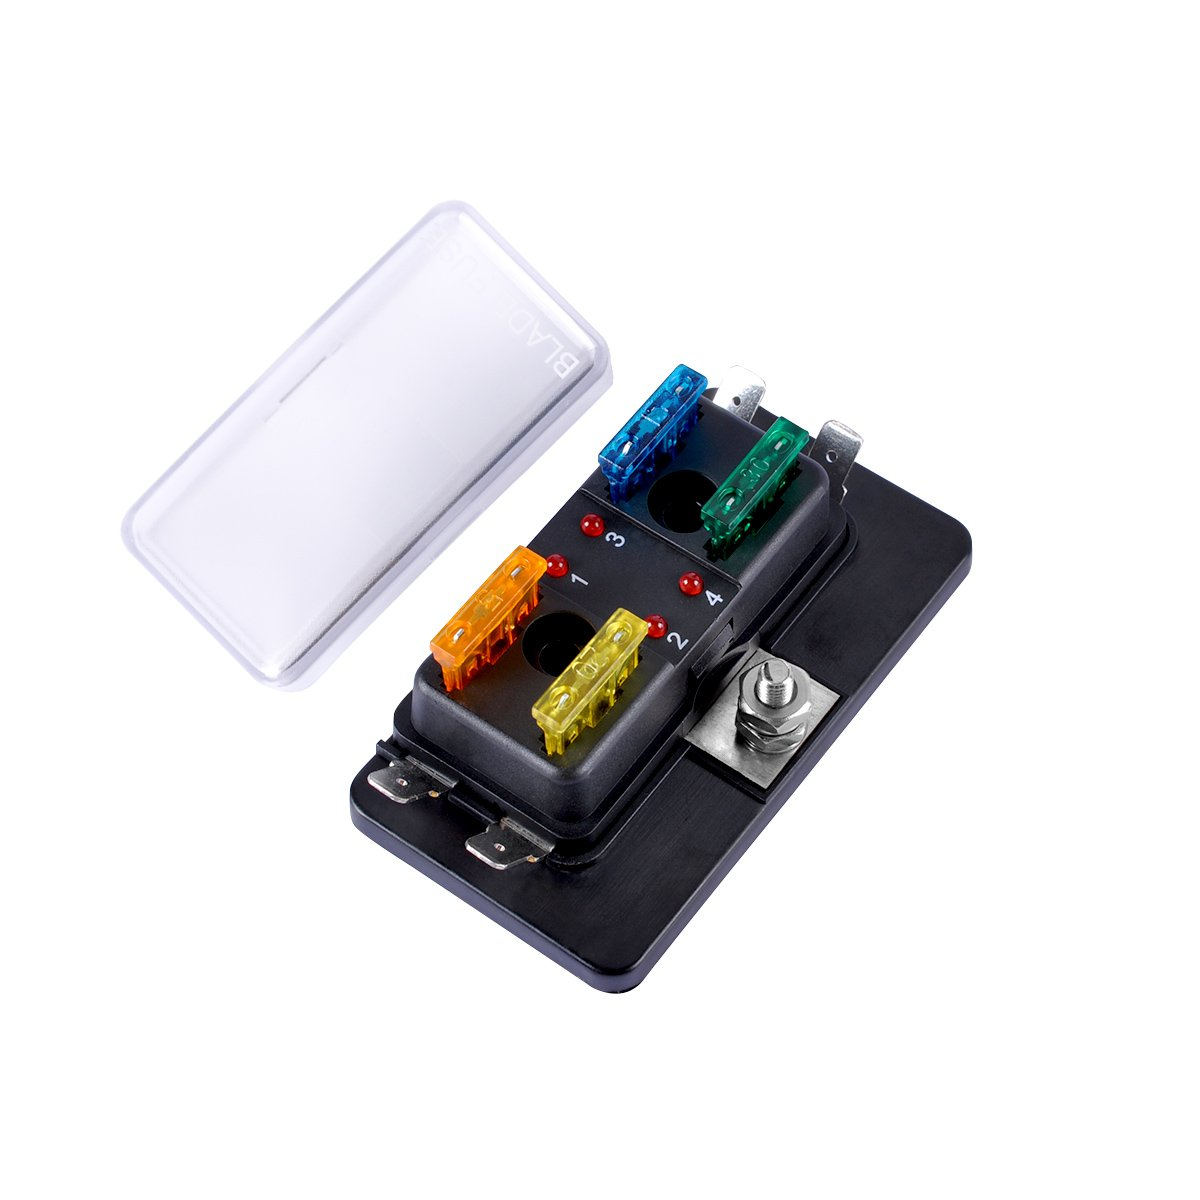 4-Way Blade Fuse Block, AutoEC Marine Fuse Box Holder for Car Boat Marine Trike with Led Safety Indicator for Blown Fuse by AutoEC (Image #8)